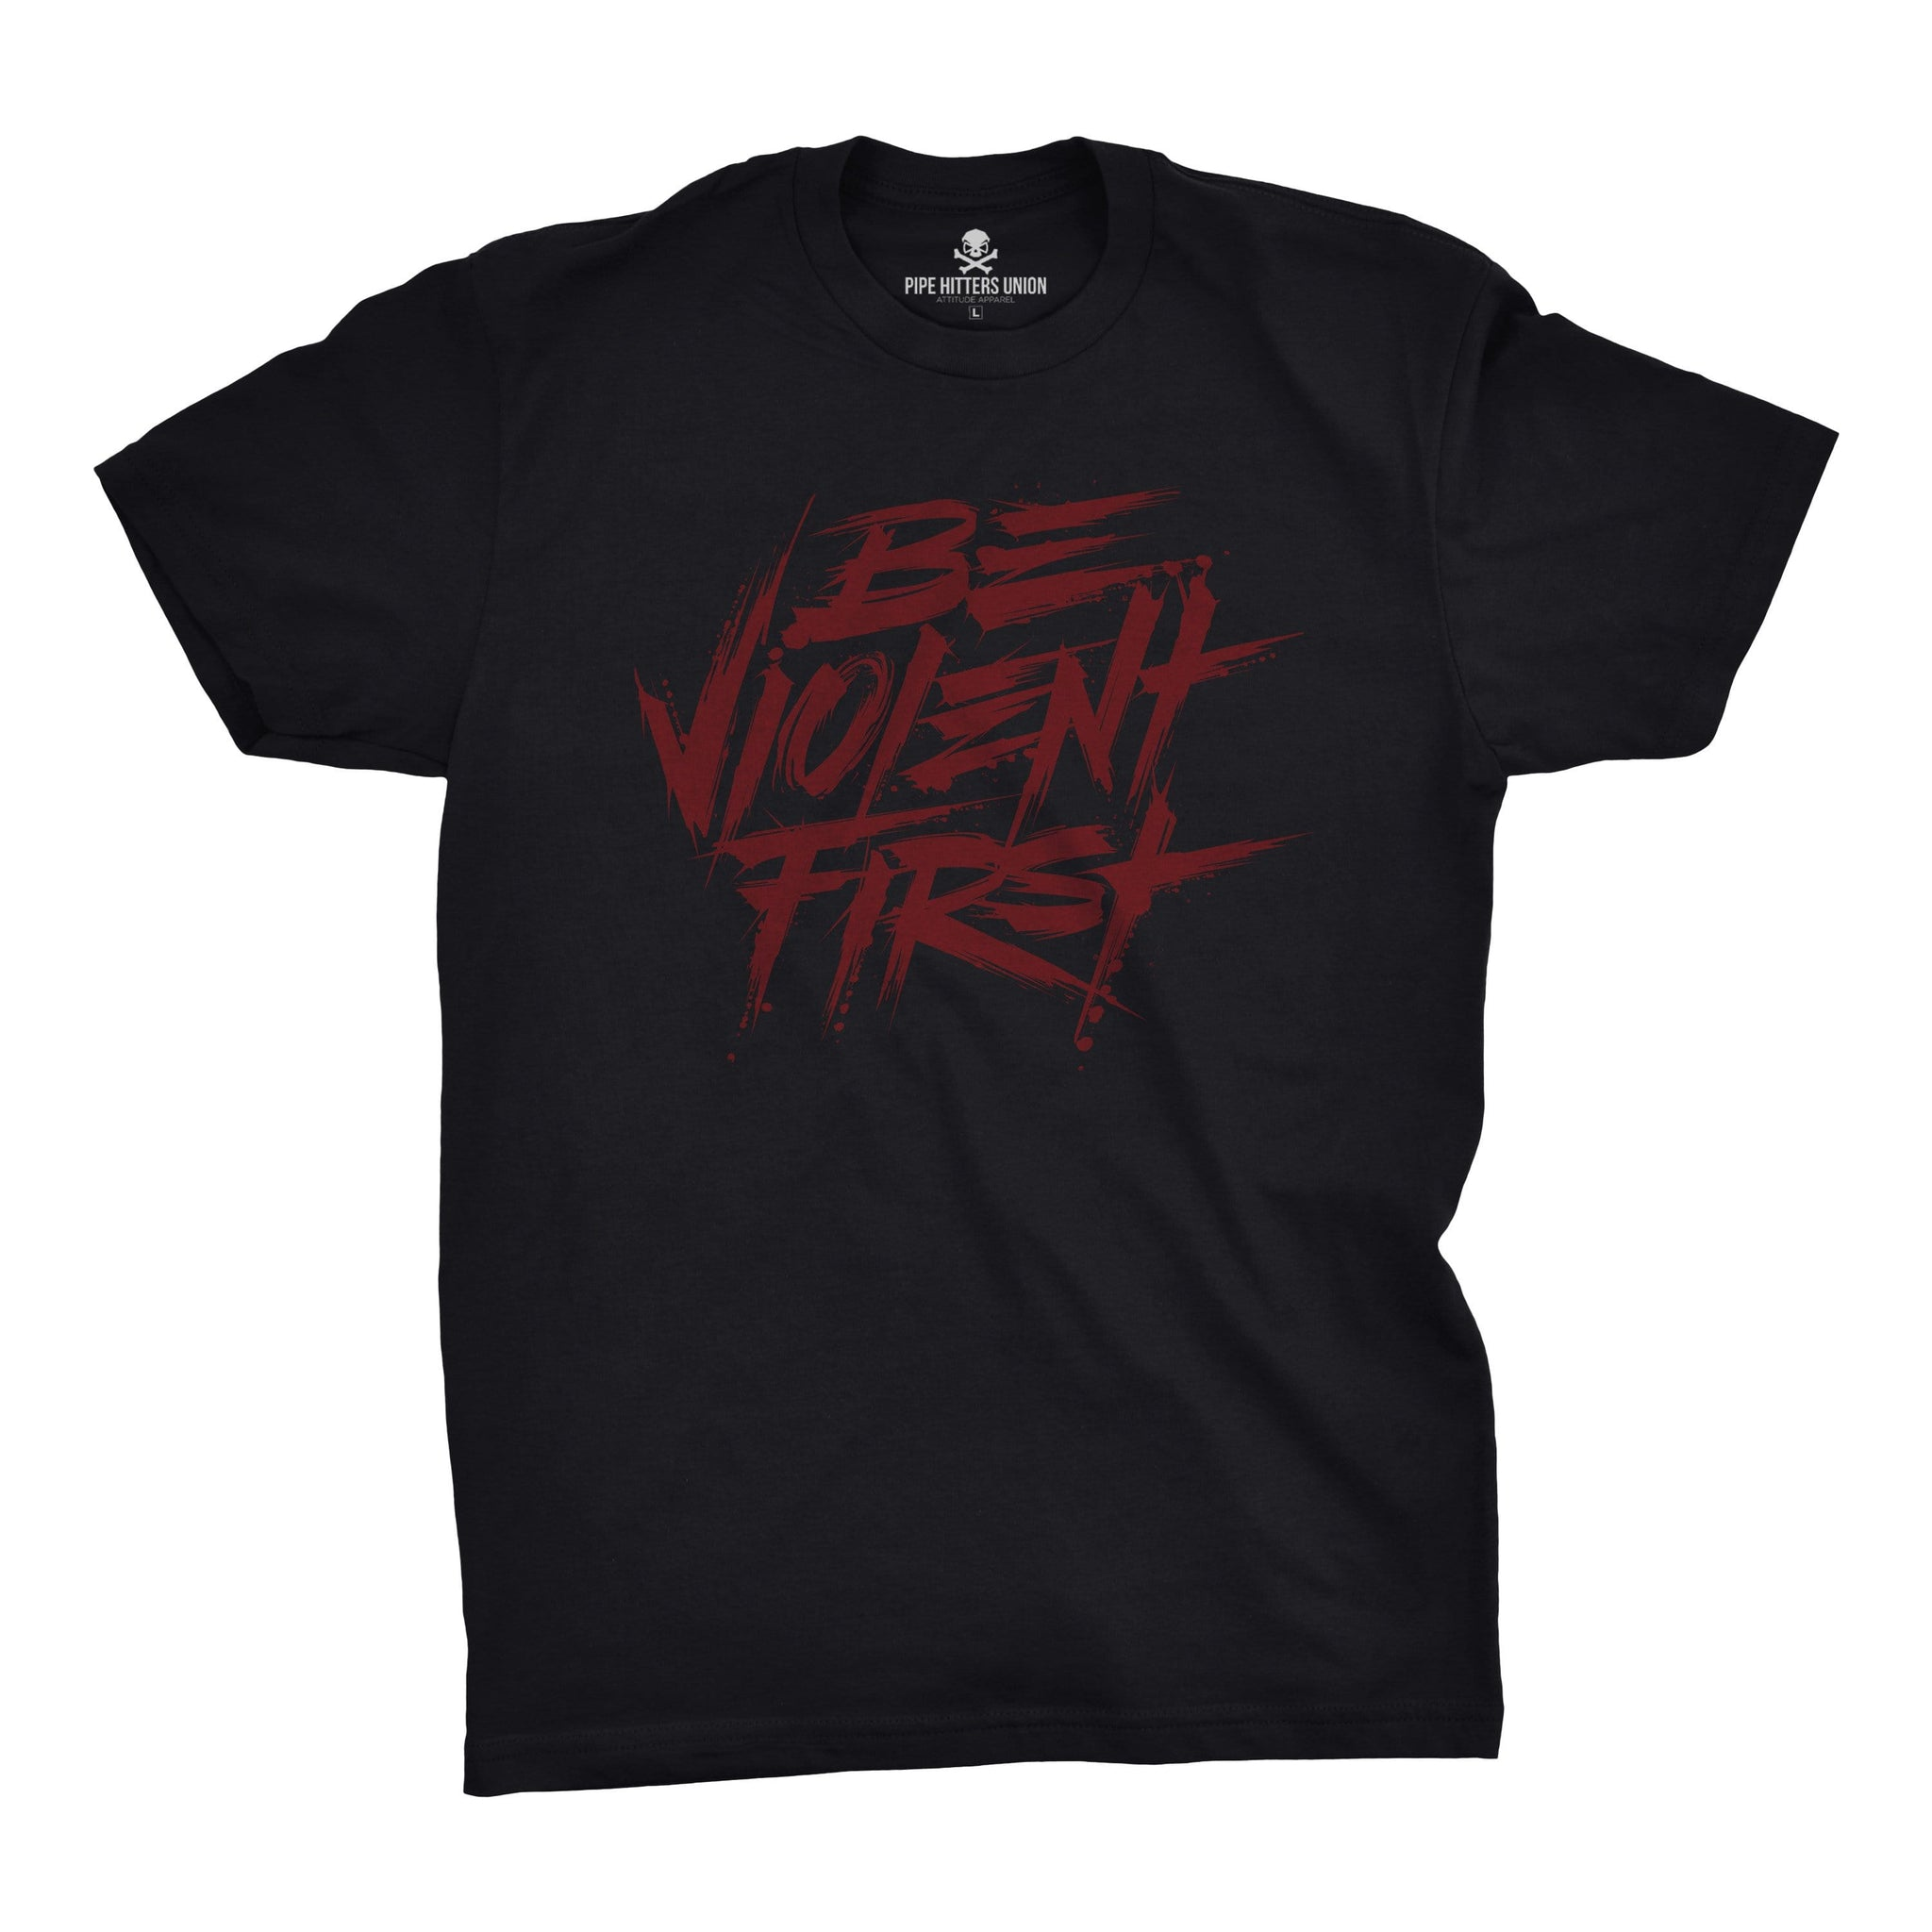 Be Violent First - Black/Red - T-Shirts - Pipe Hitters Union